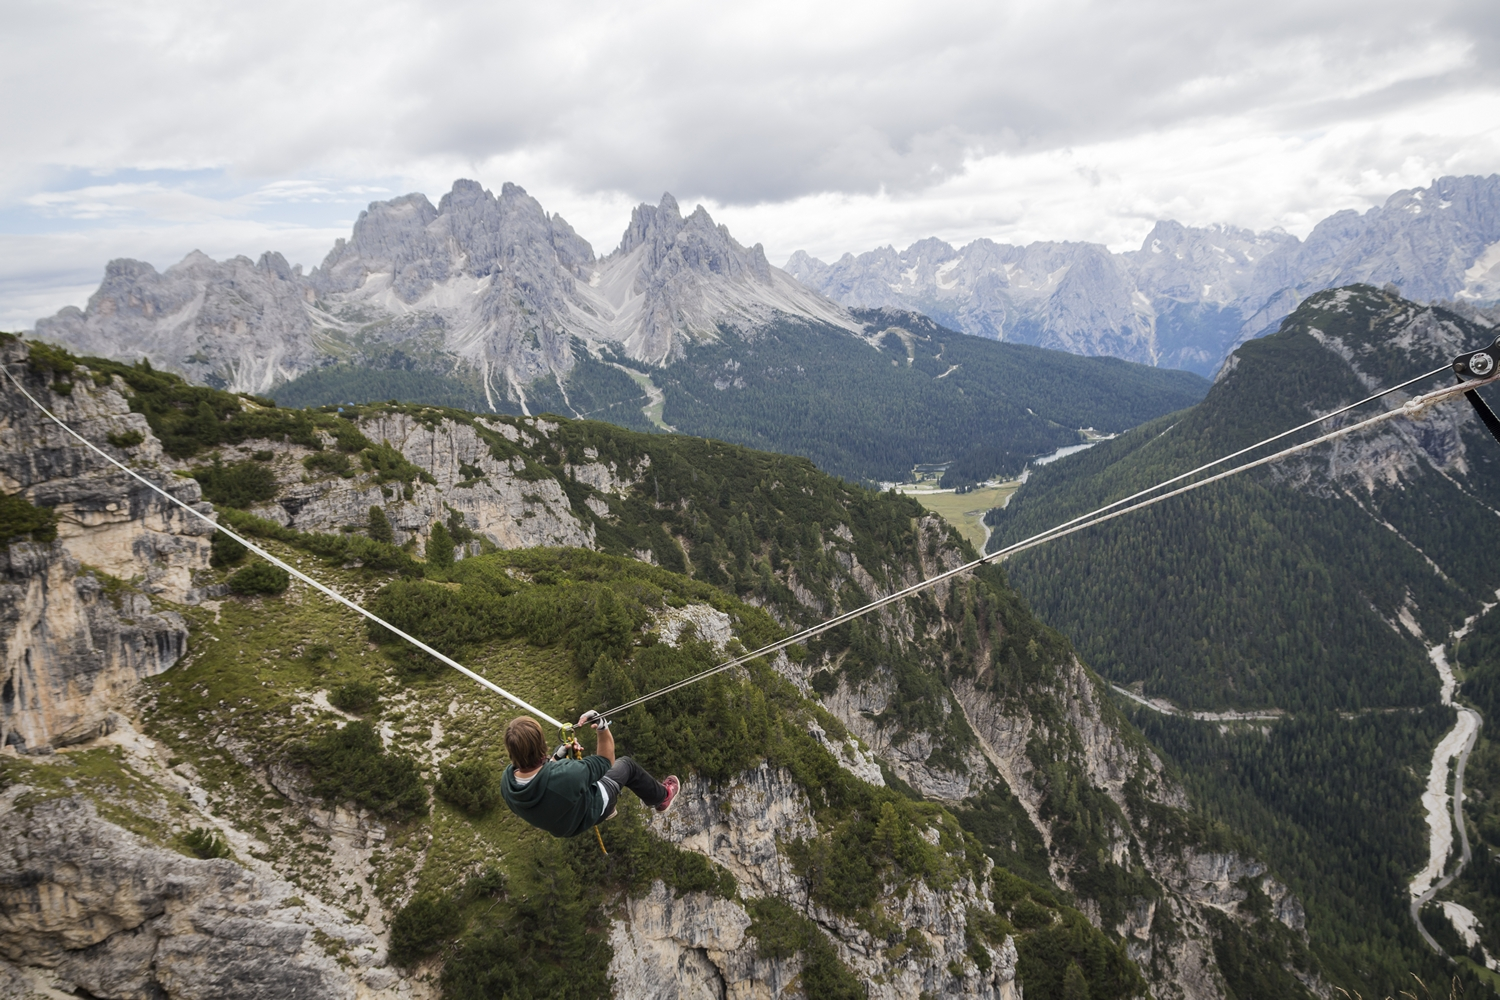 orosz_adam_outdoorinhales_highline_monte_piana_2014_18